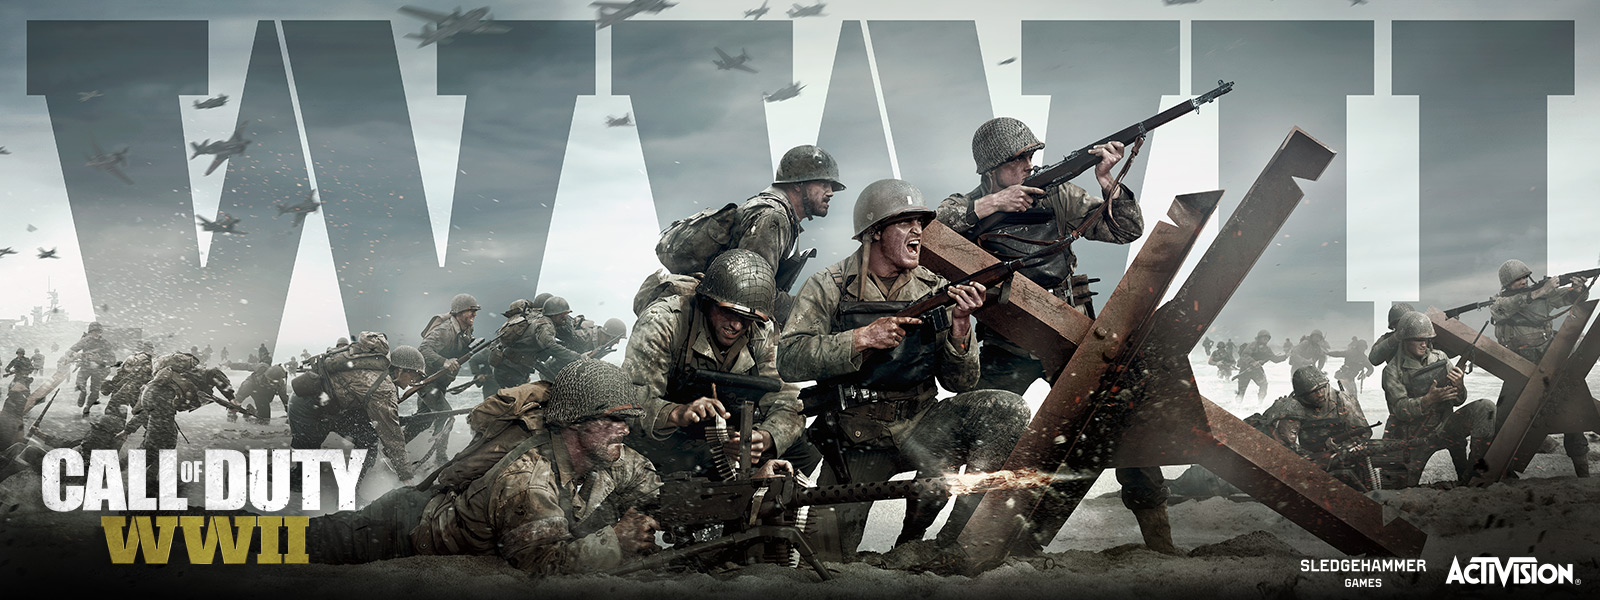 Патч для Call of Duty: WWII v 1.0